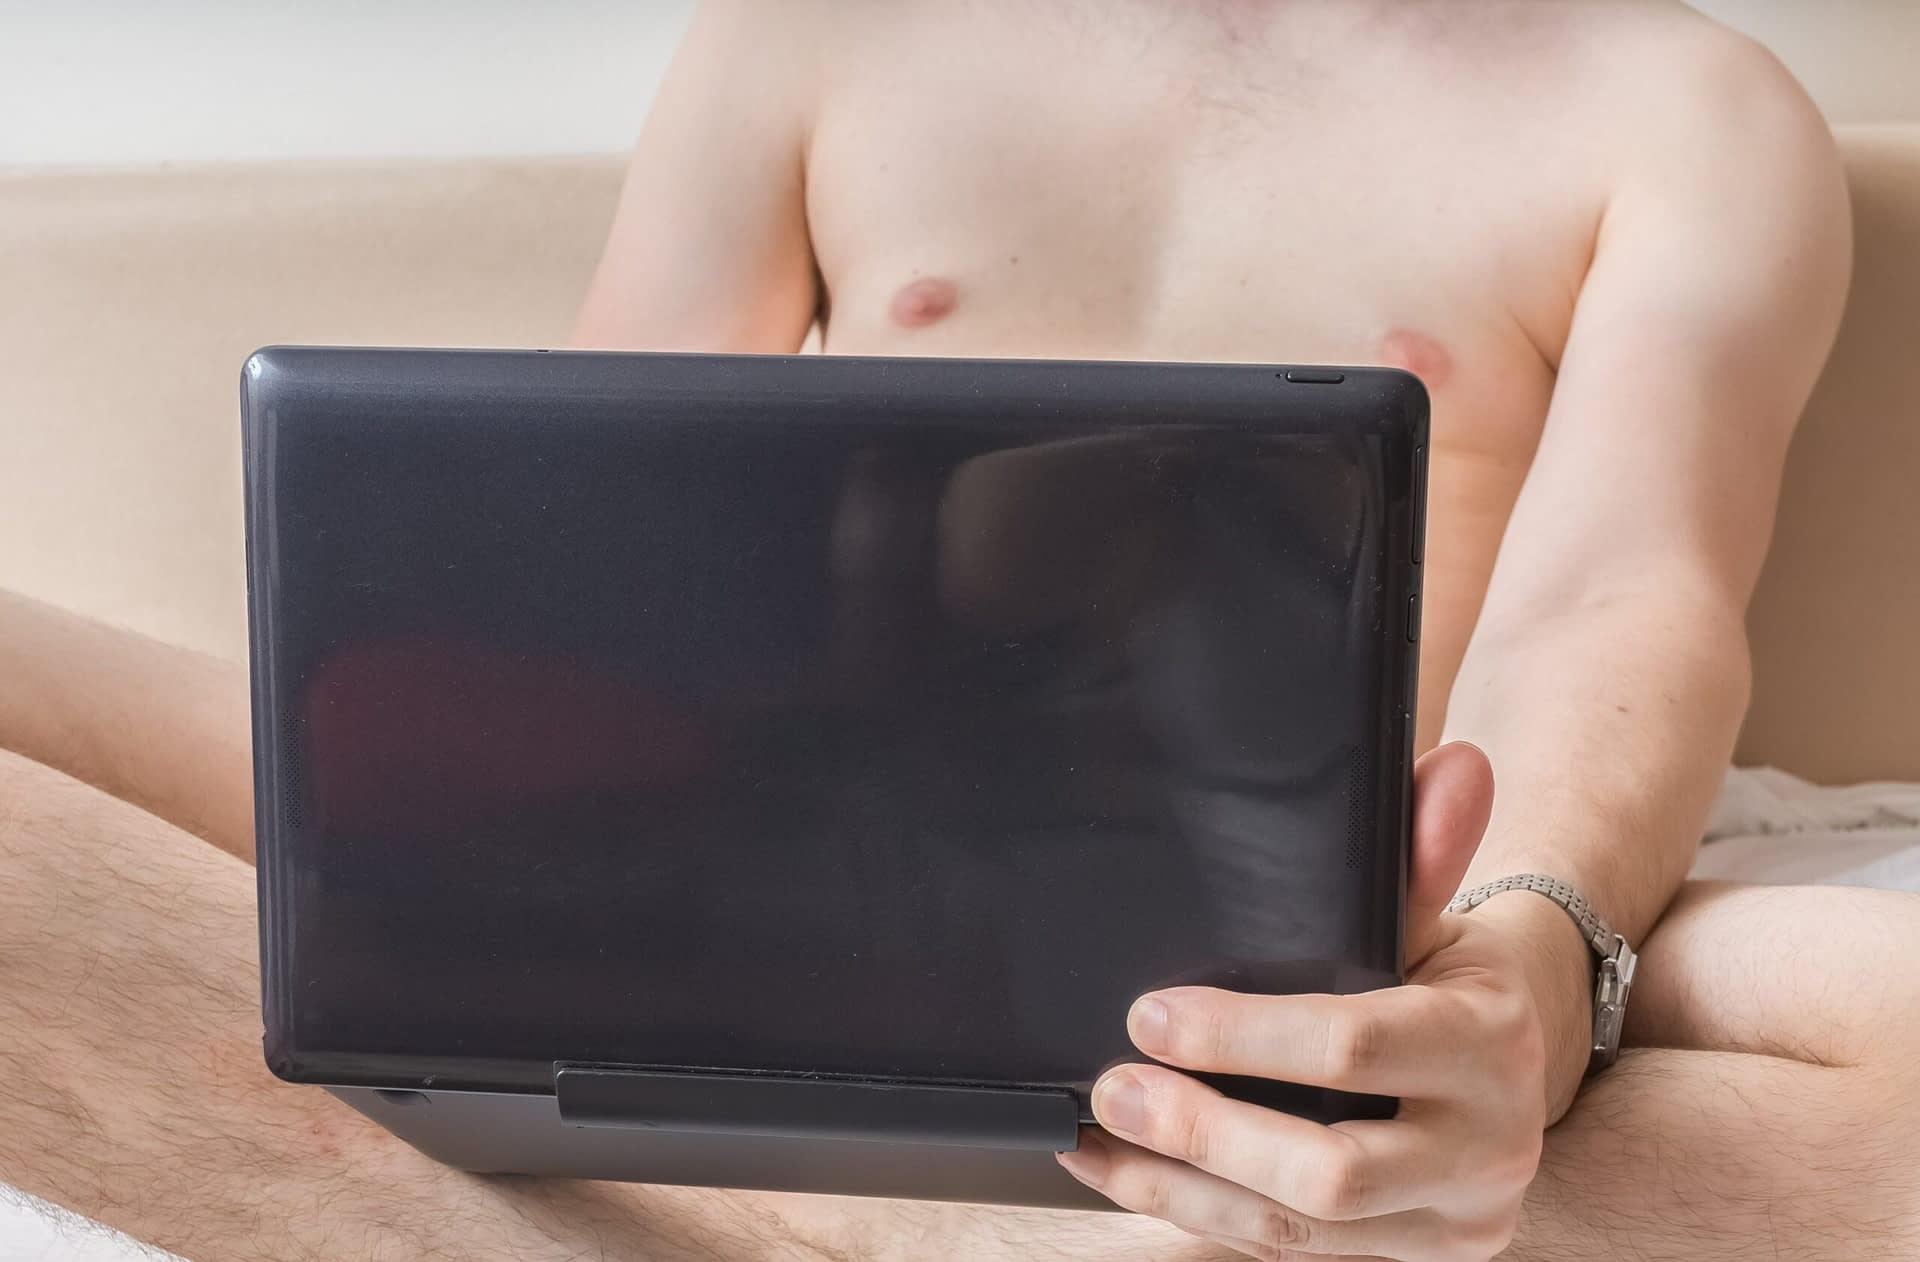 young naked man is watching pornography on laptop and masturbating